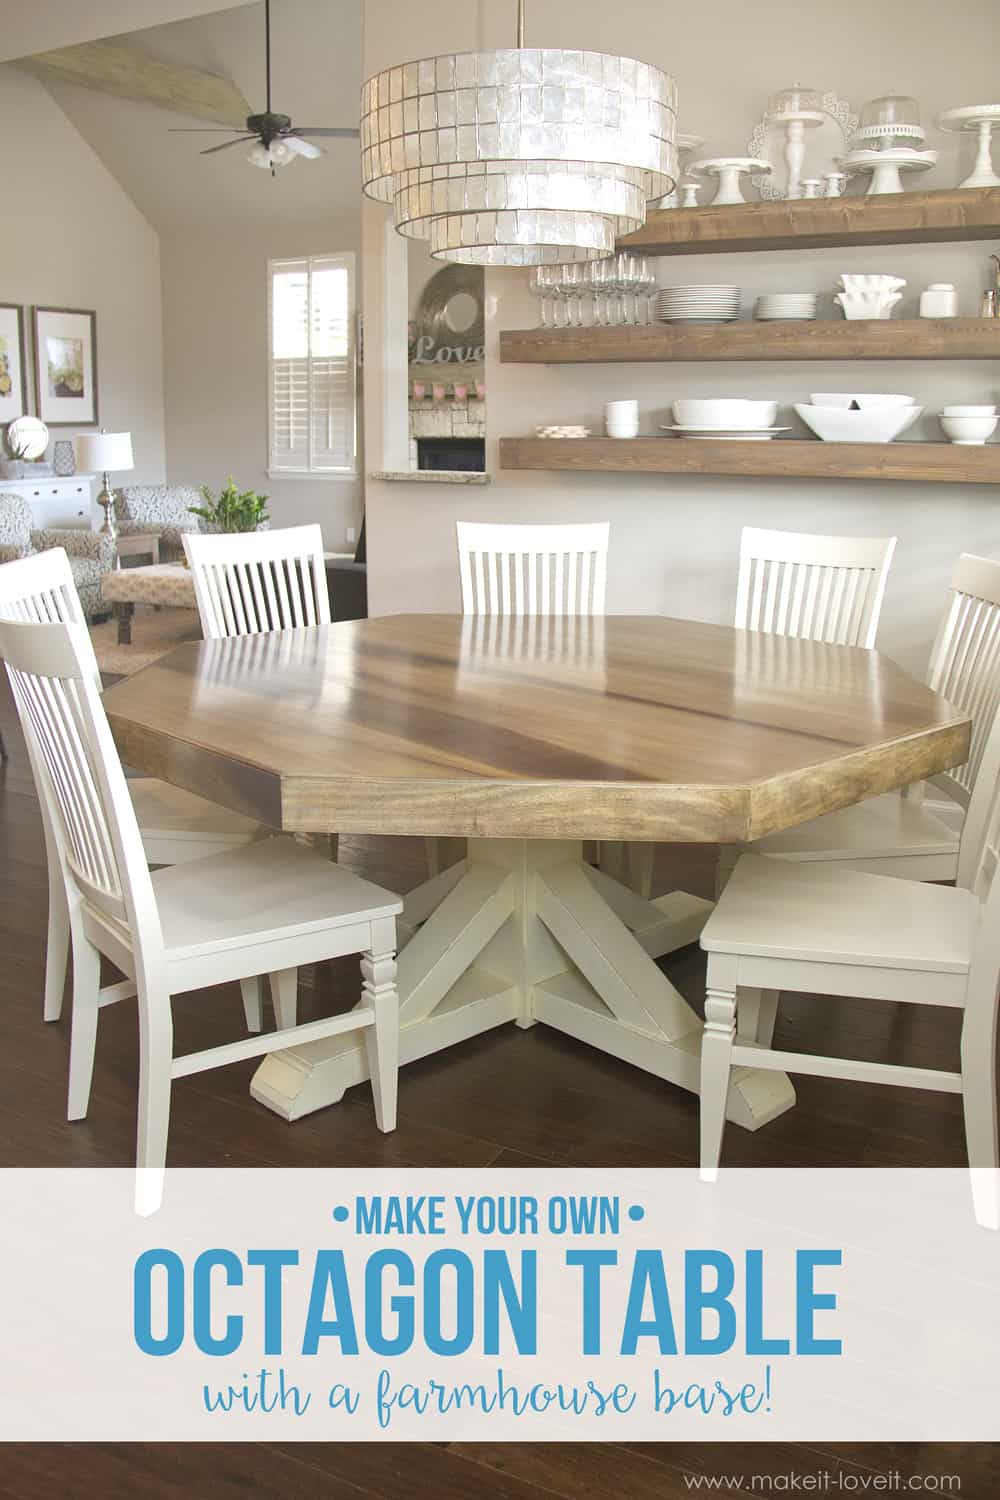 Diy octagon table